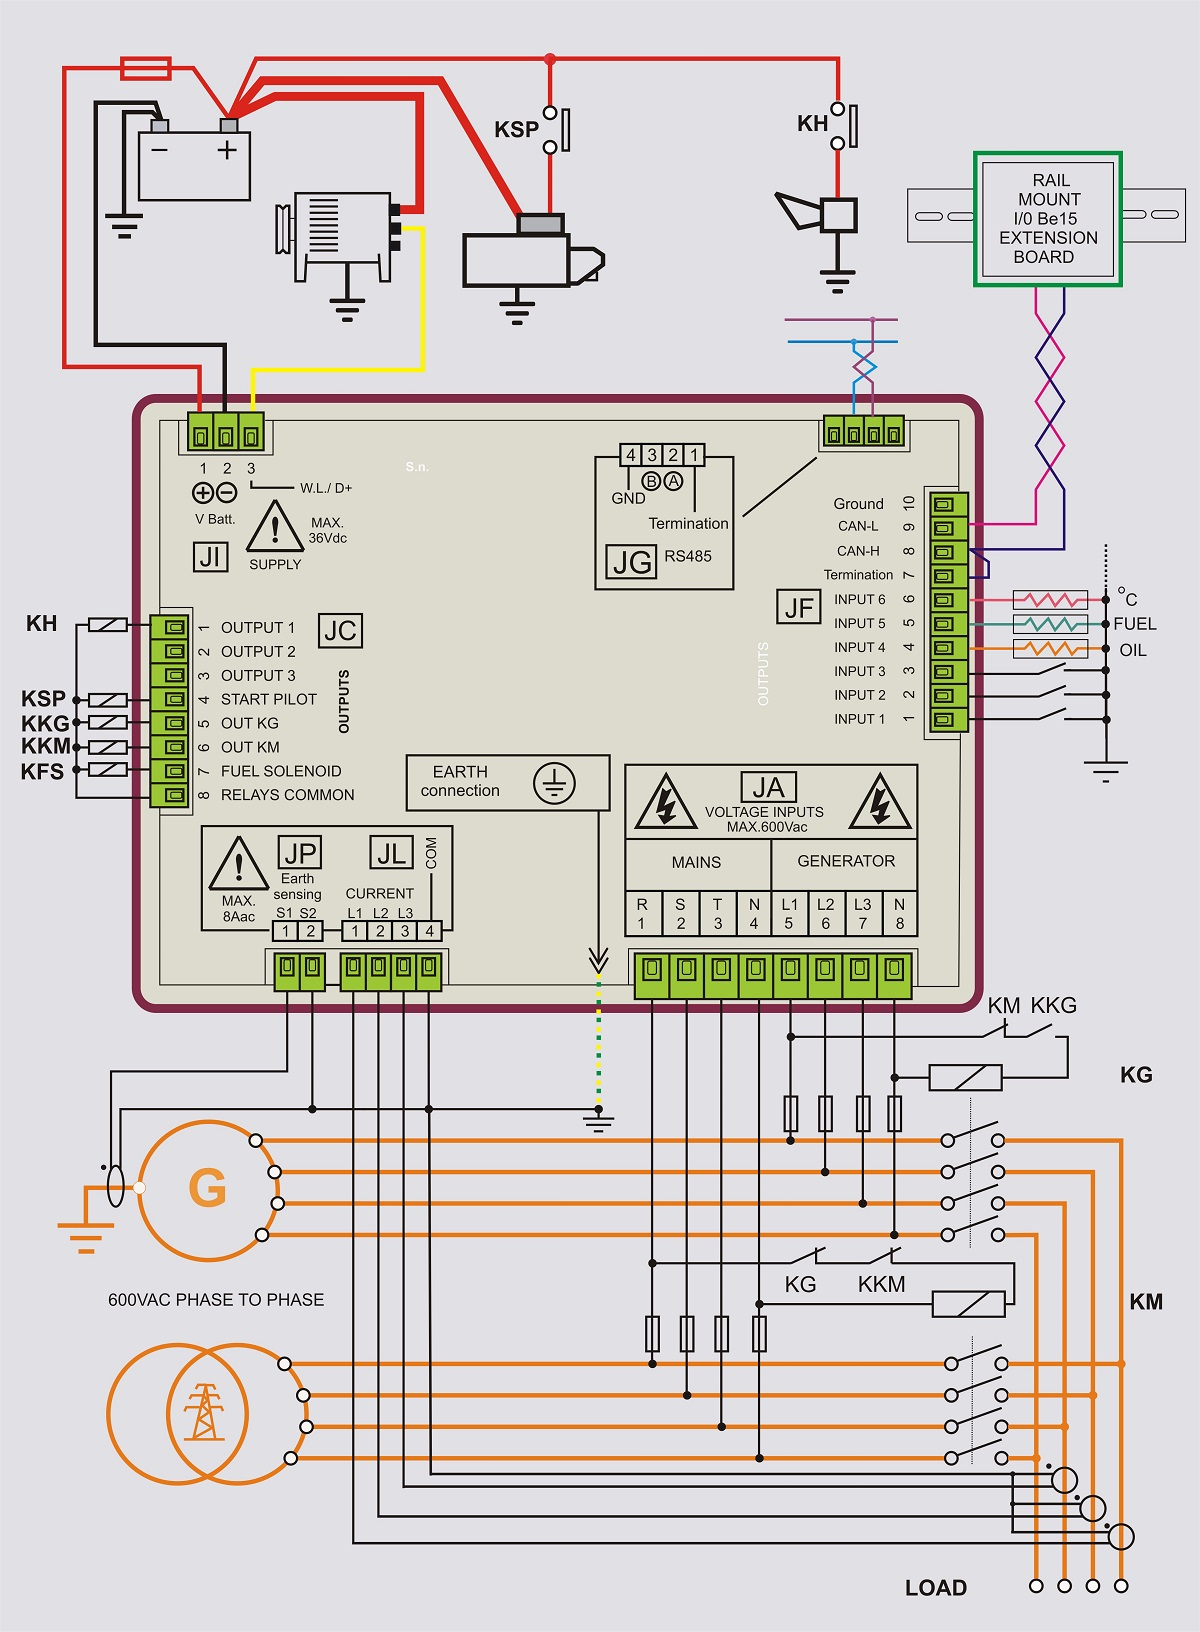 asco transfer switch wiring diagram Collection-Good Generac Automatic Transfer Switch Wiring Diagram 65 For Your And 17-g